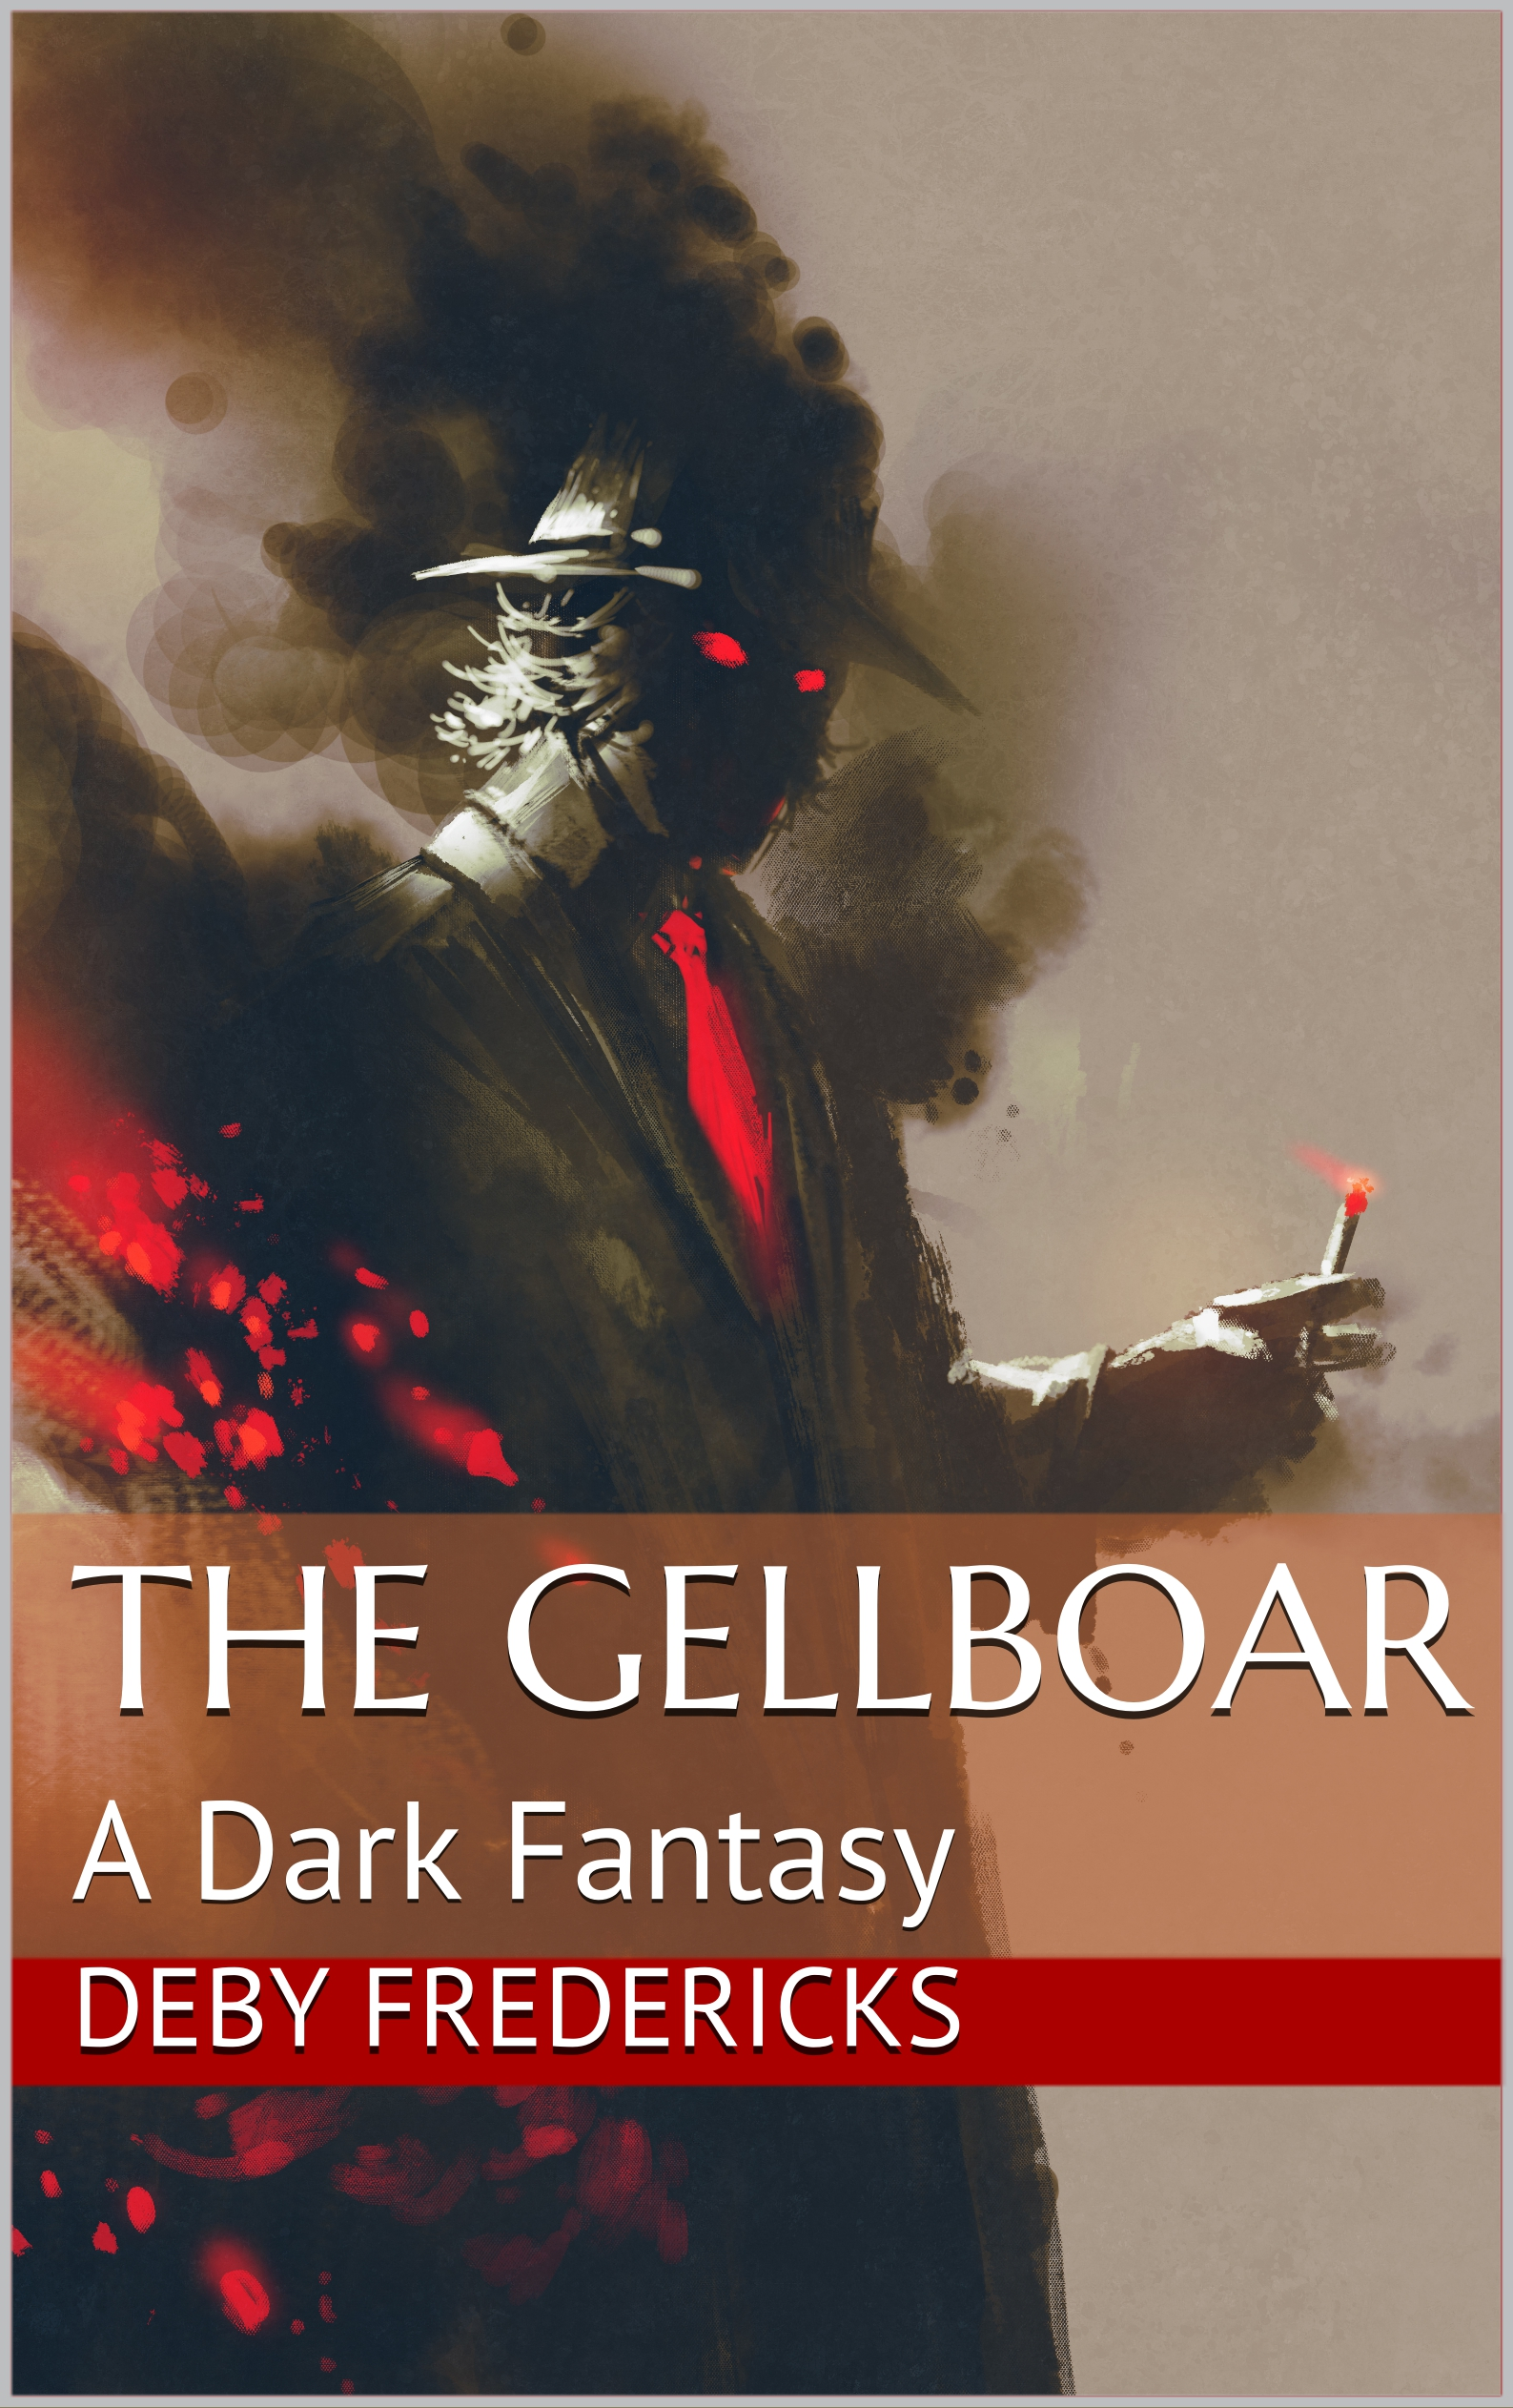 #BadMoonRising: The Gellboar by Deby Fredericks #darkfantasy